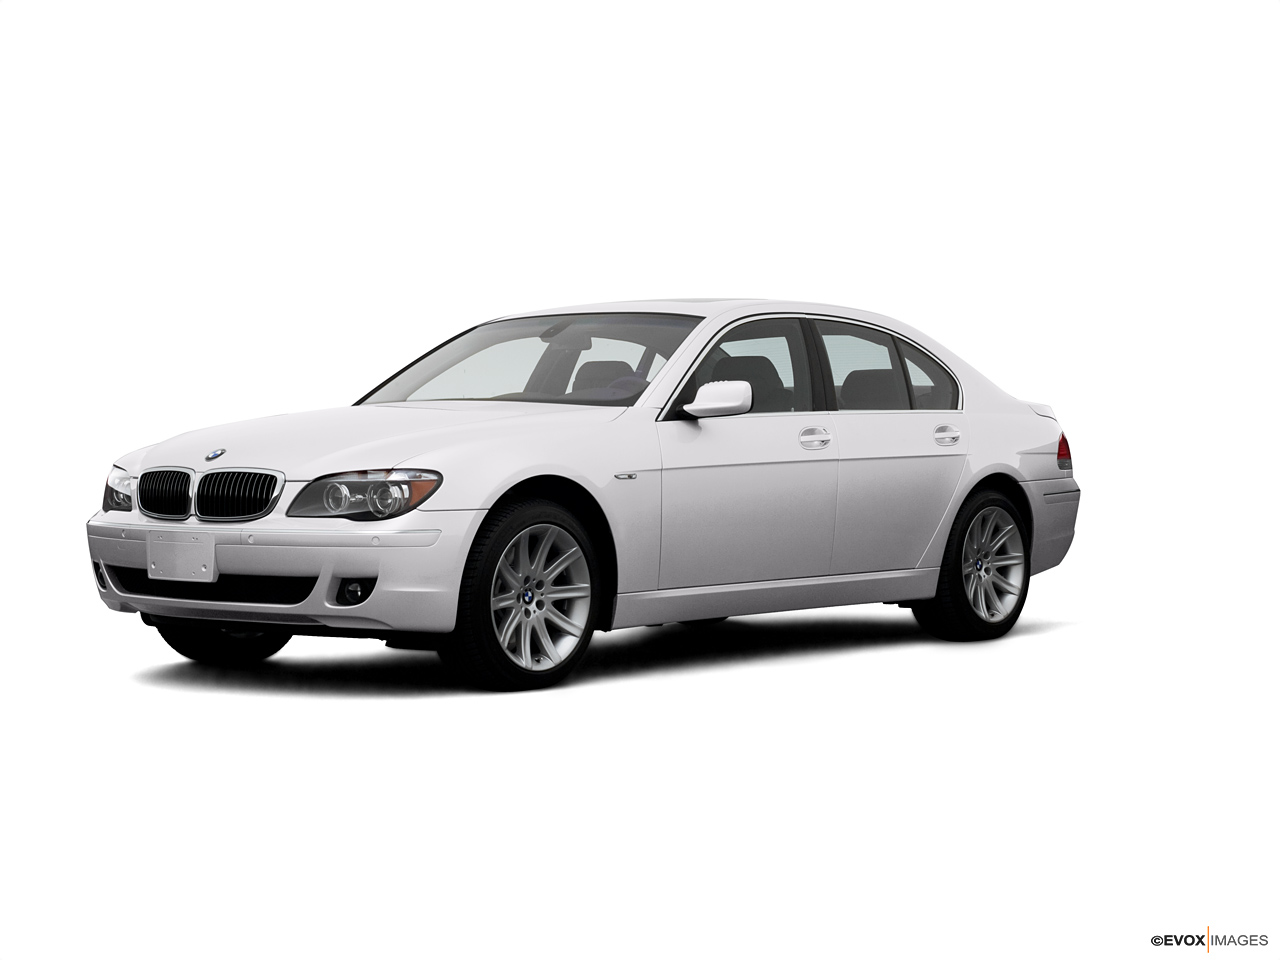 tx inventory bmw for in sale details at cartech houston